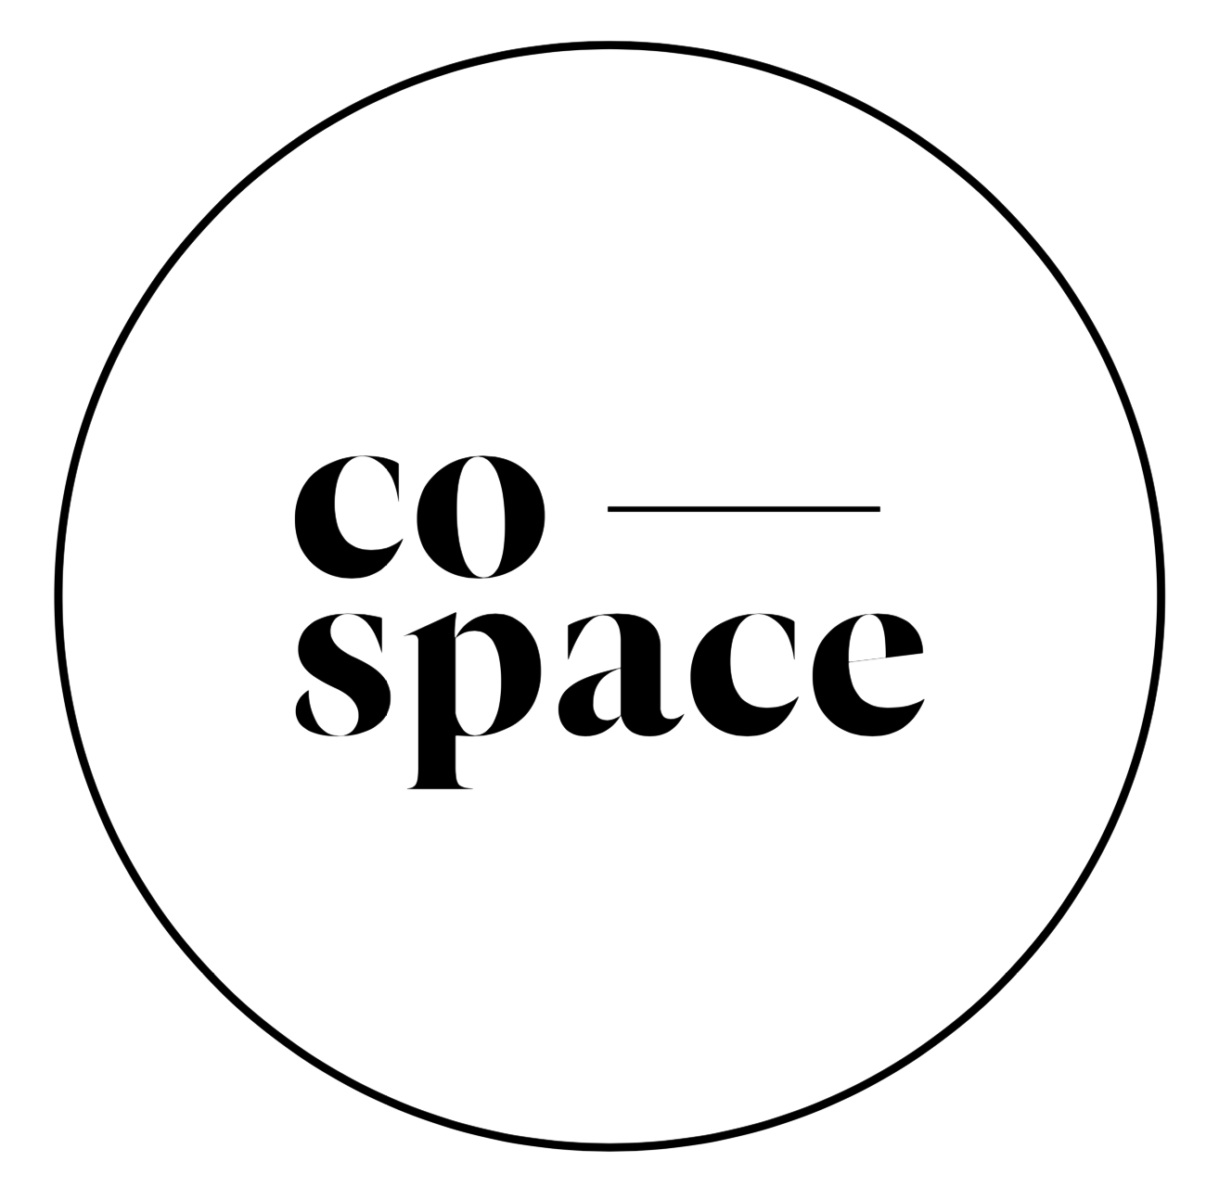 Co-Space joins the regeneration programme